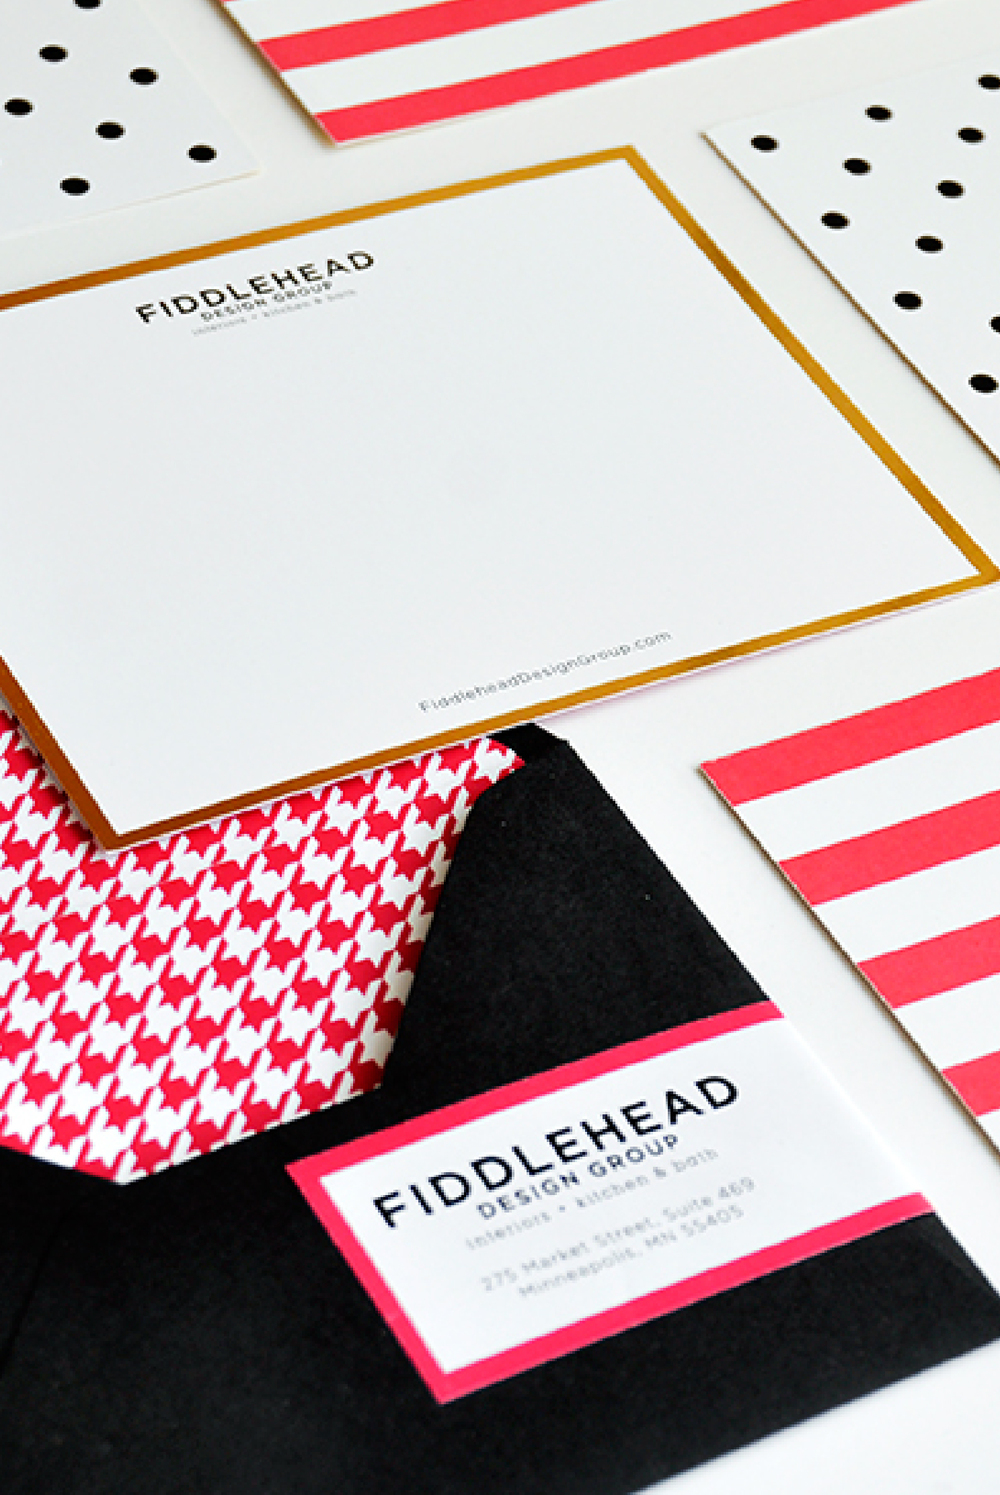 Fiddlehead Design Group